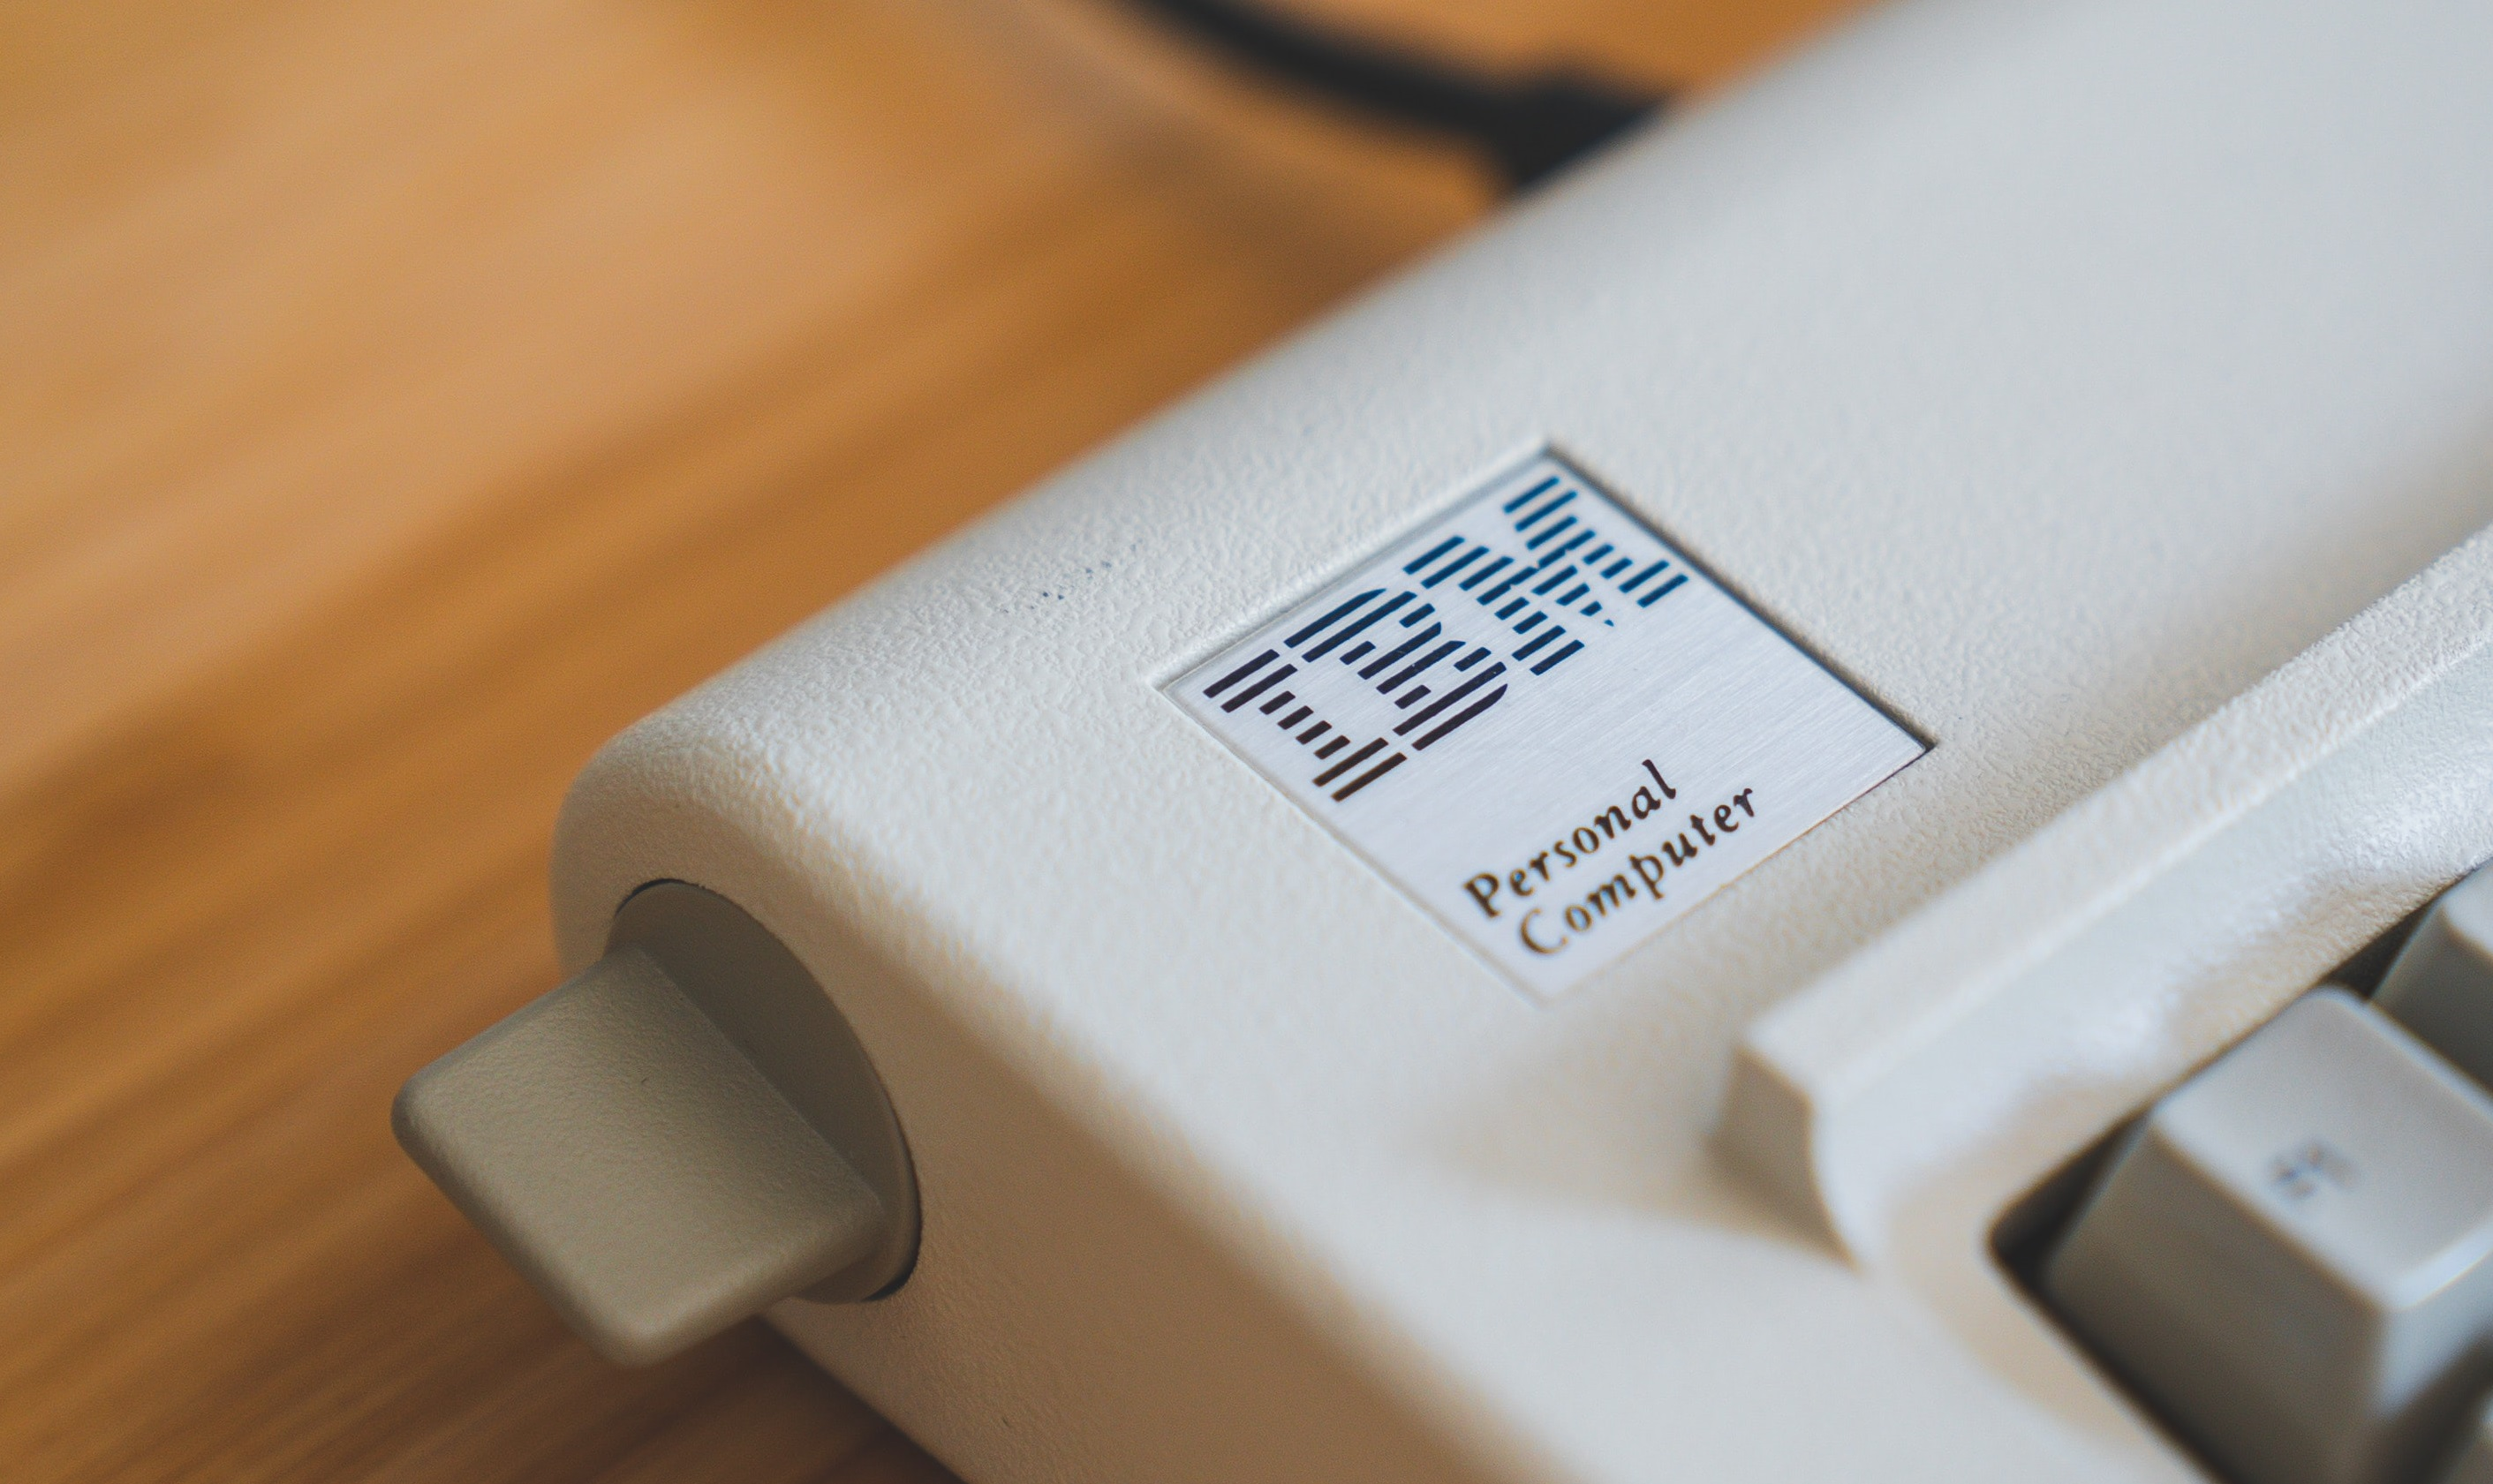 IBM personal Computer